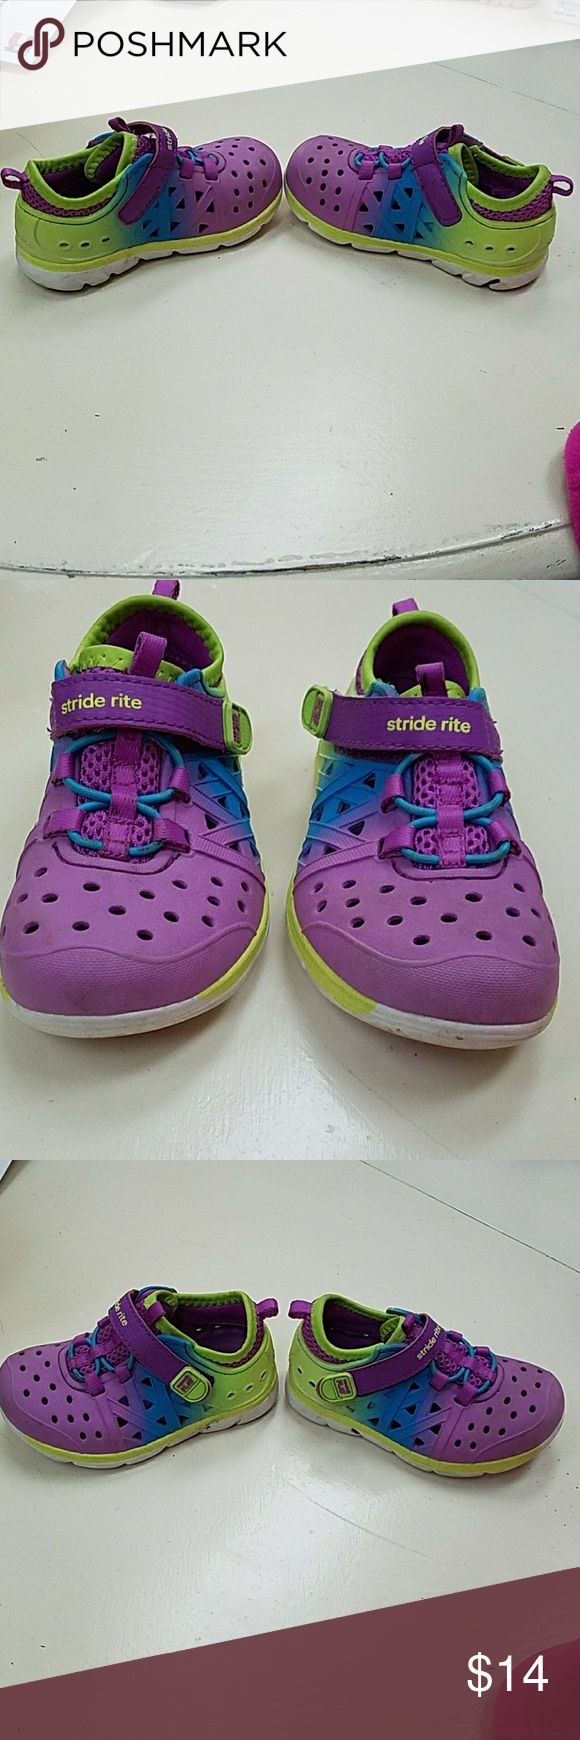 Stride Rite M2P Phibian Shoes Size 6. Good condition with the exception of some dirt throughout.  These wash easily and could probably be thrown in the machine to clean up better. Worn a handful of times towards end of summer. Smoke free home. Stride Rite Shoes